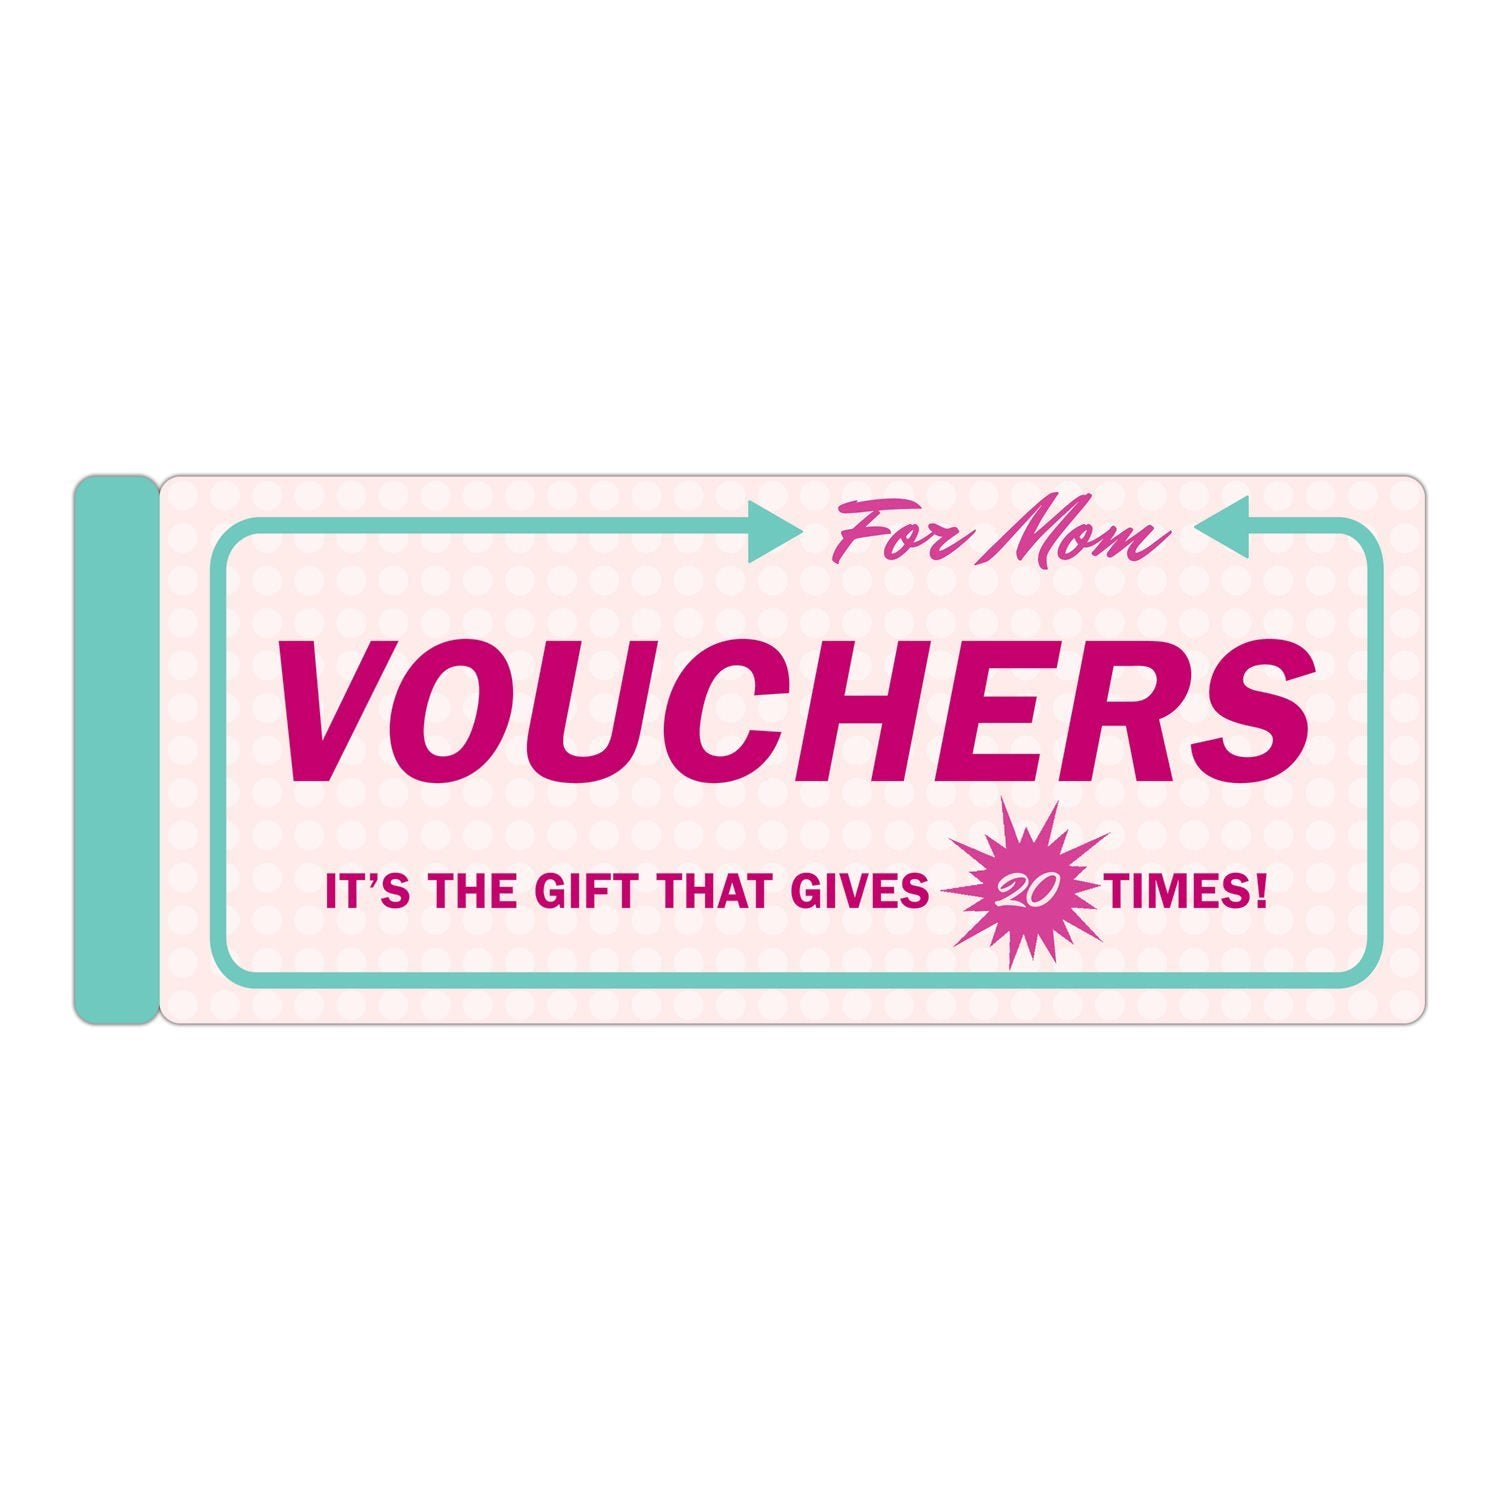 Knock Knock® Vouchers for Mom